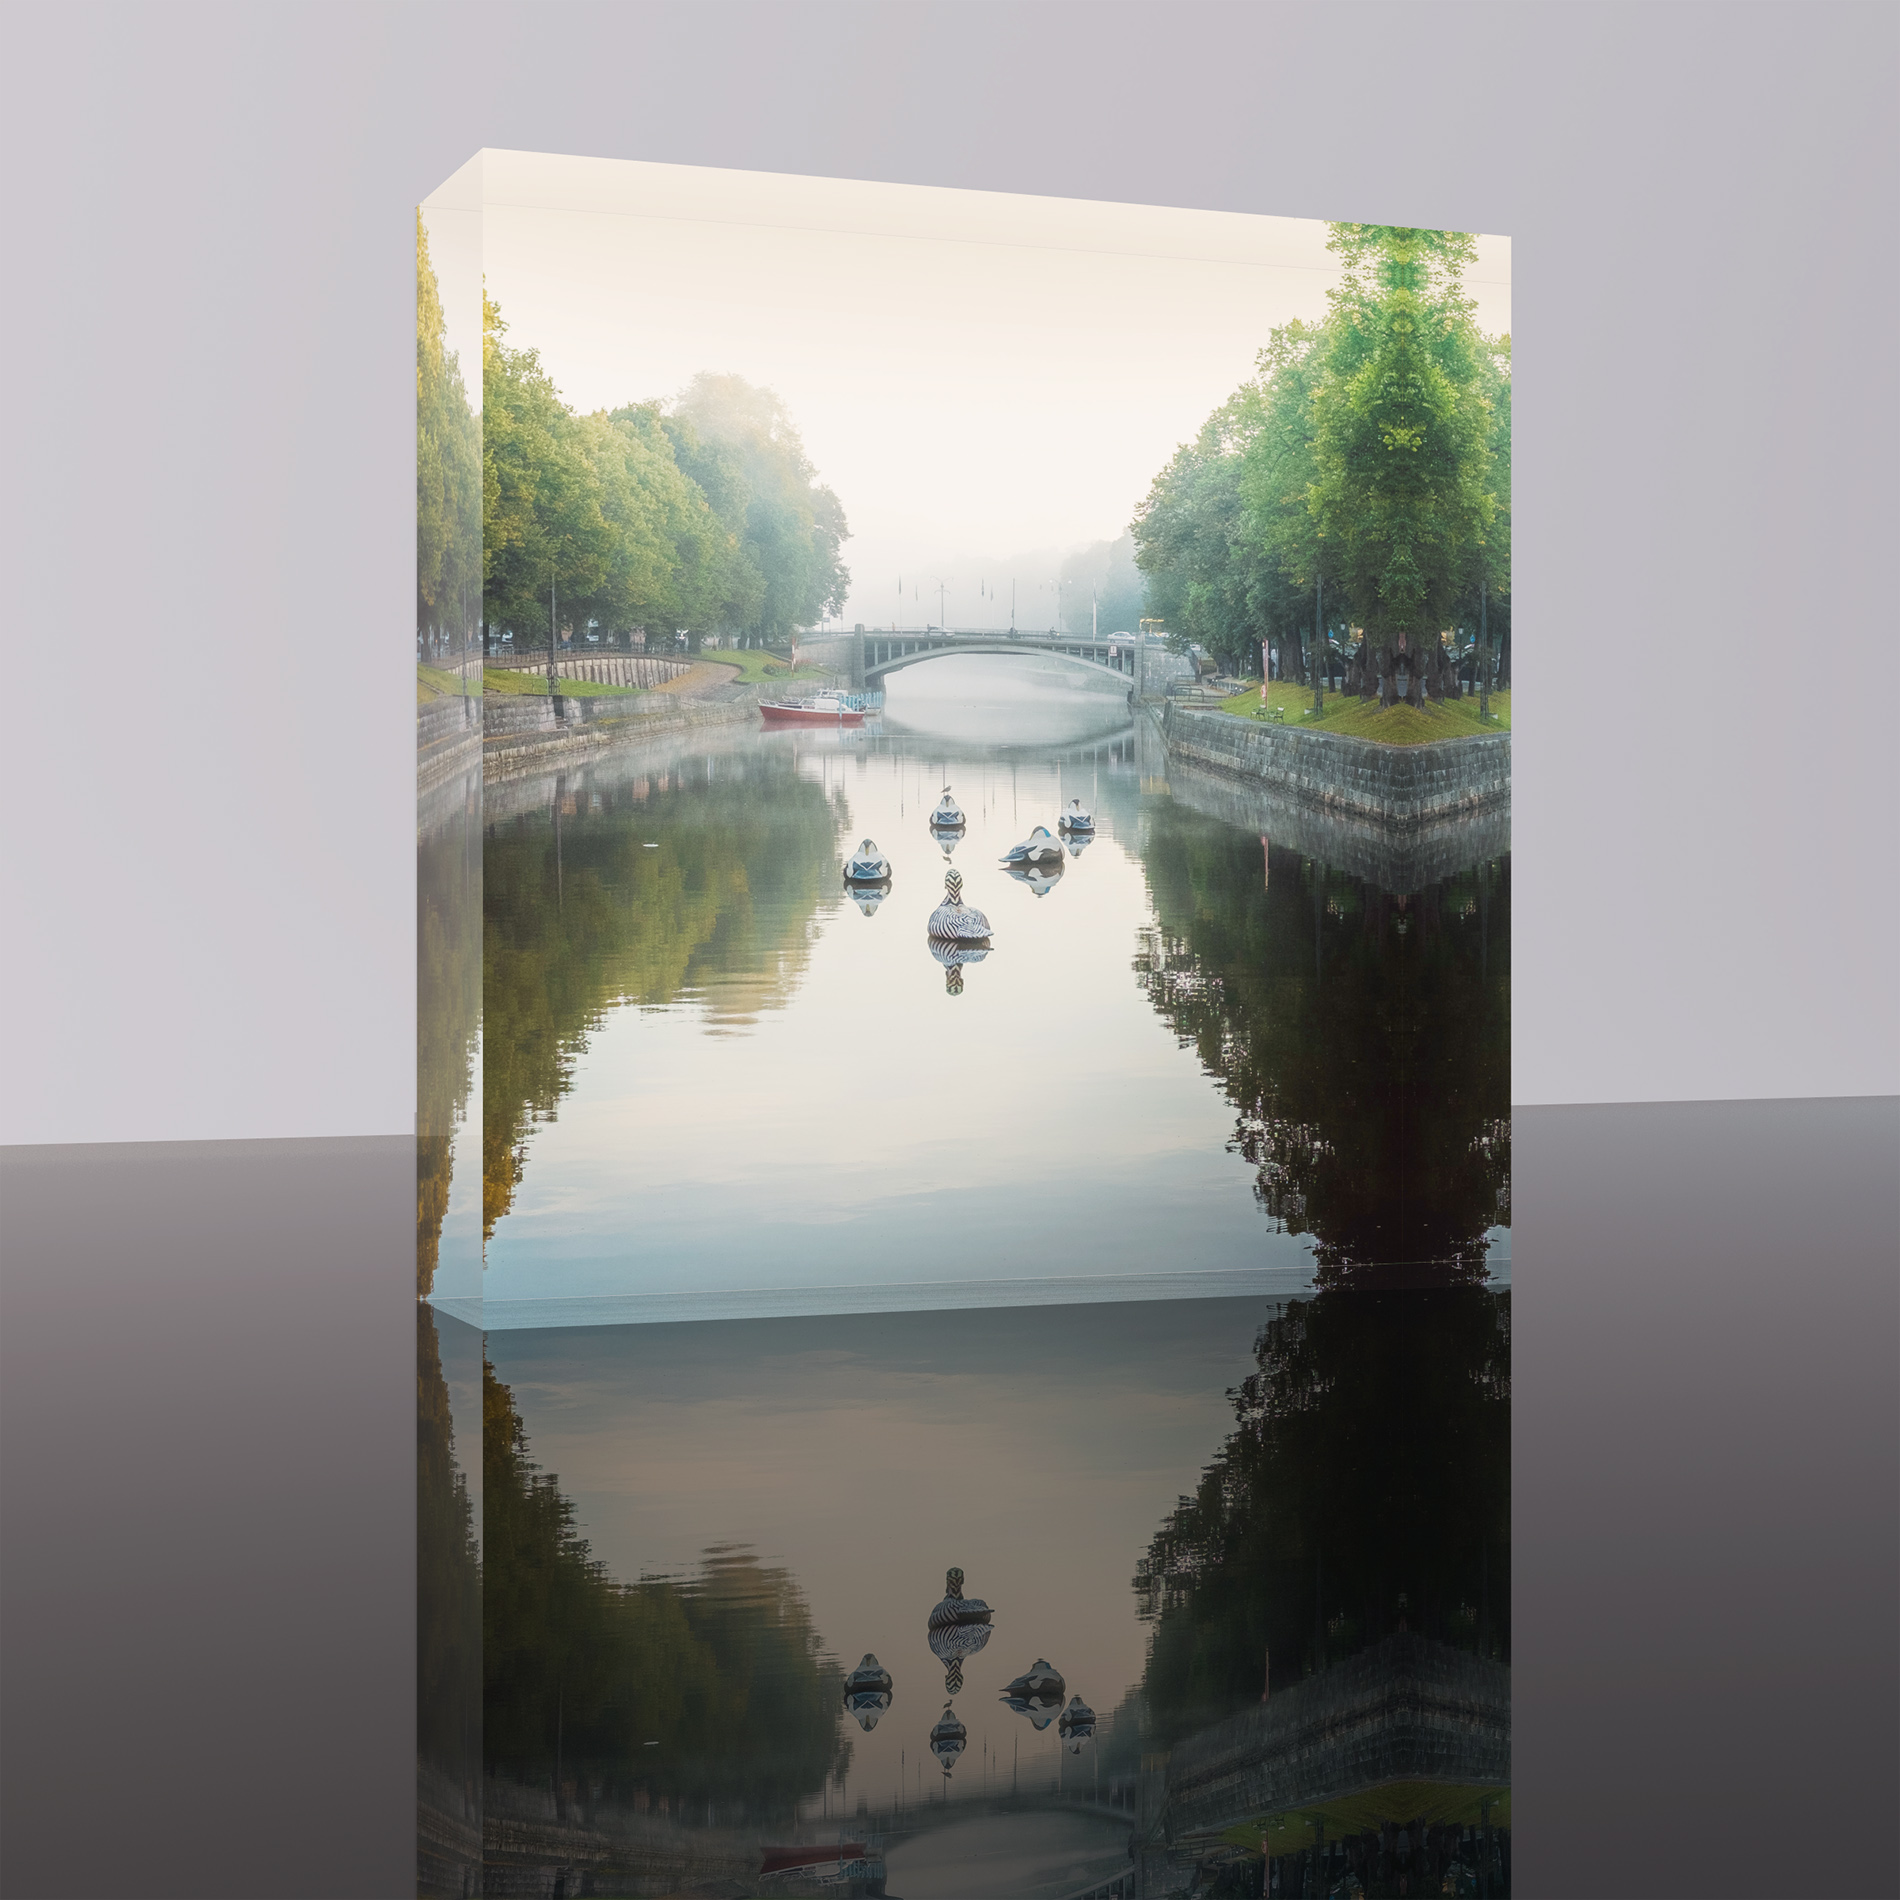 SEPTEMBER MORNING | AURA RIVER, TURKU, FINLAND Acrylic Block Size: 20 L x 20 K x 3 S [cm] #1/30